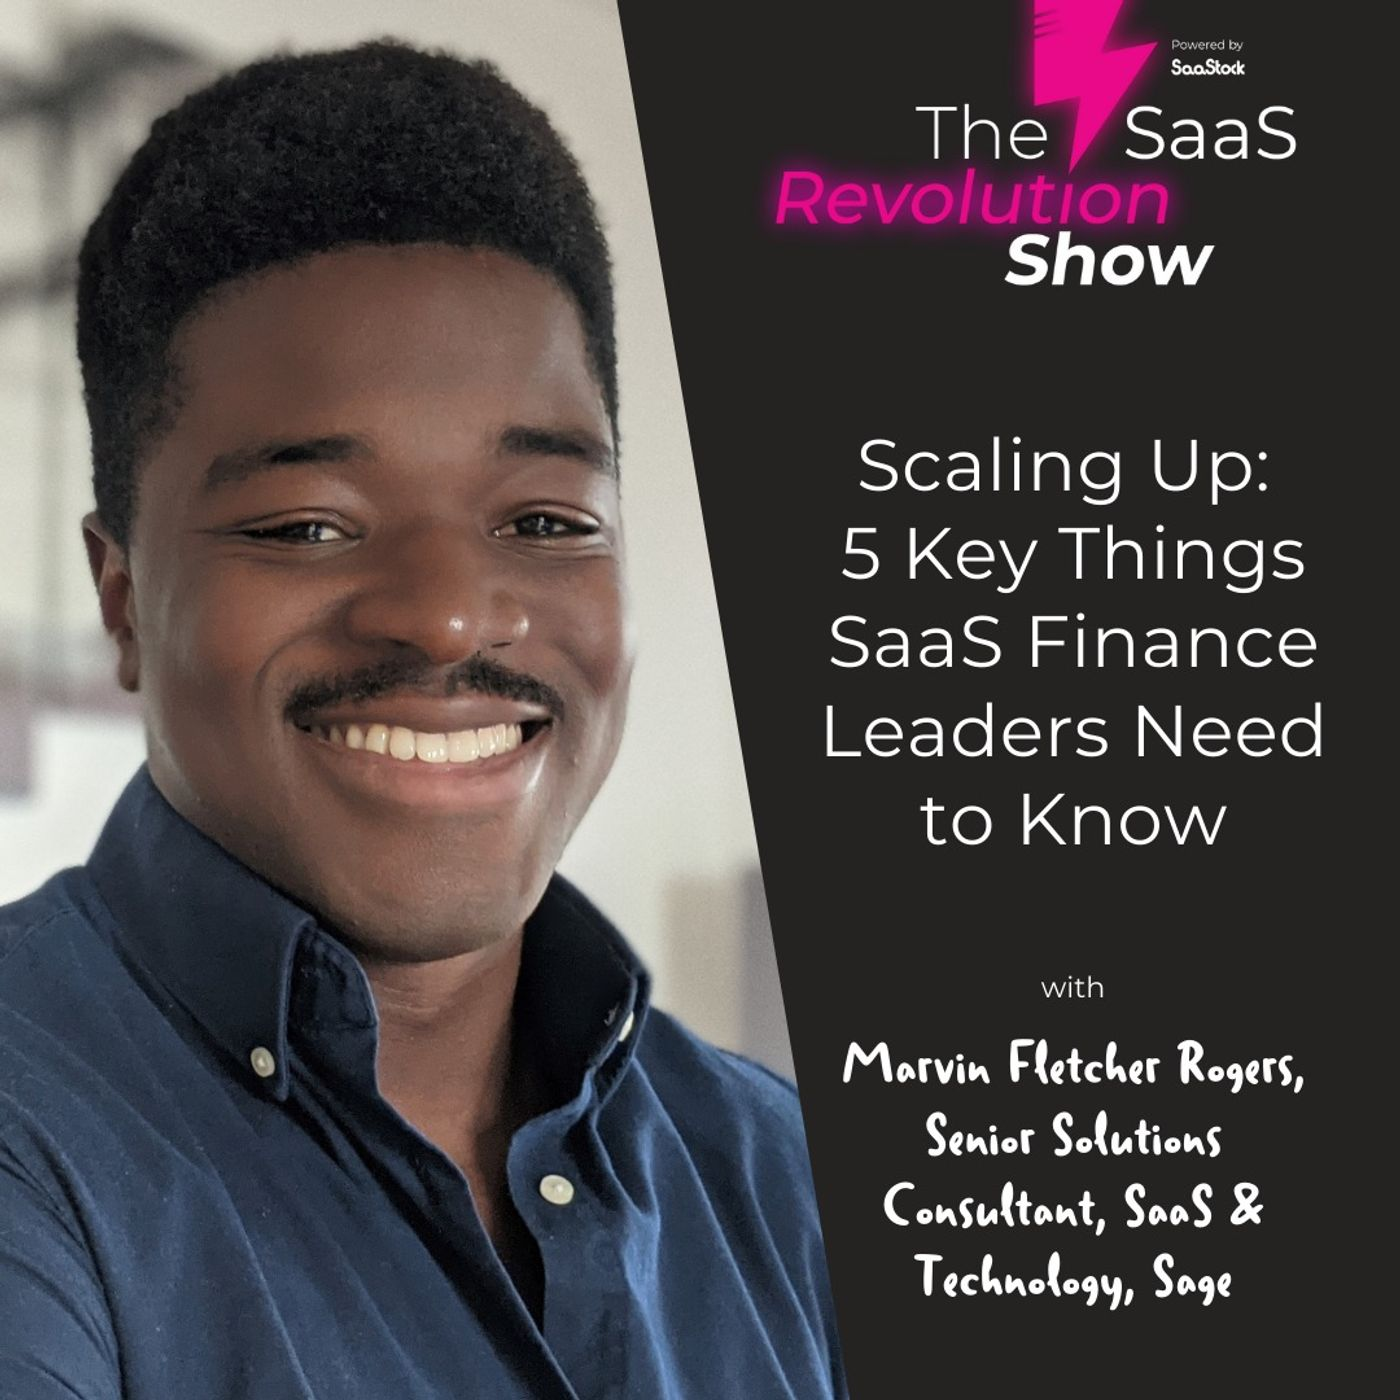 Scaling Up: 5 Key Things SaaS Finance Leaders Need to Know, with Marvin Fletcher Rogers